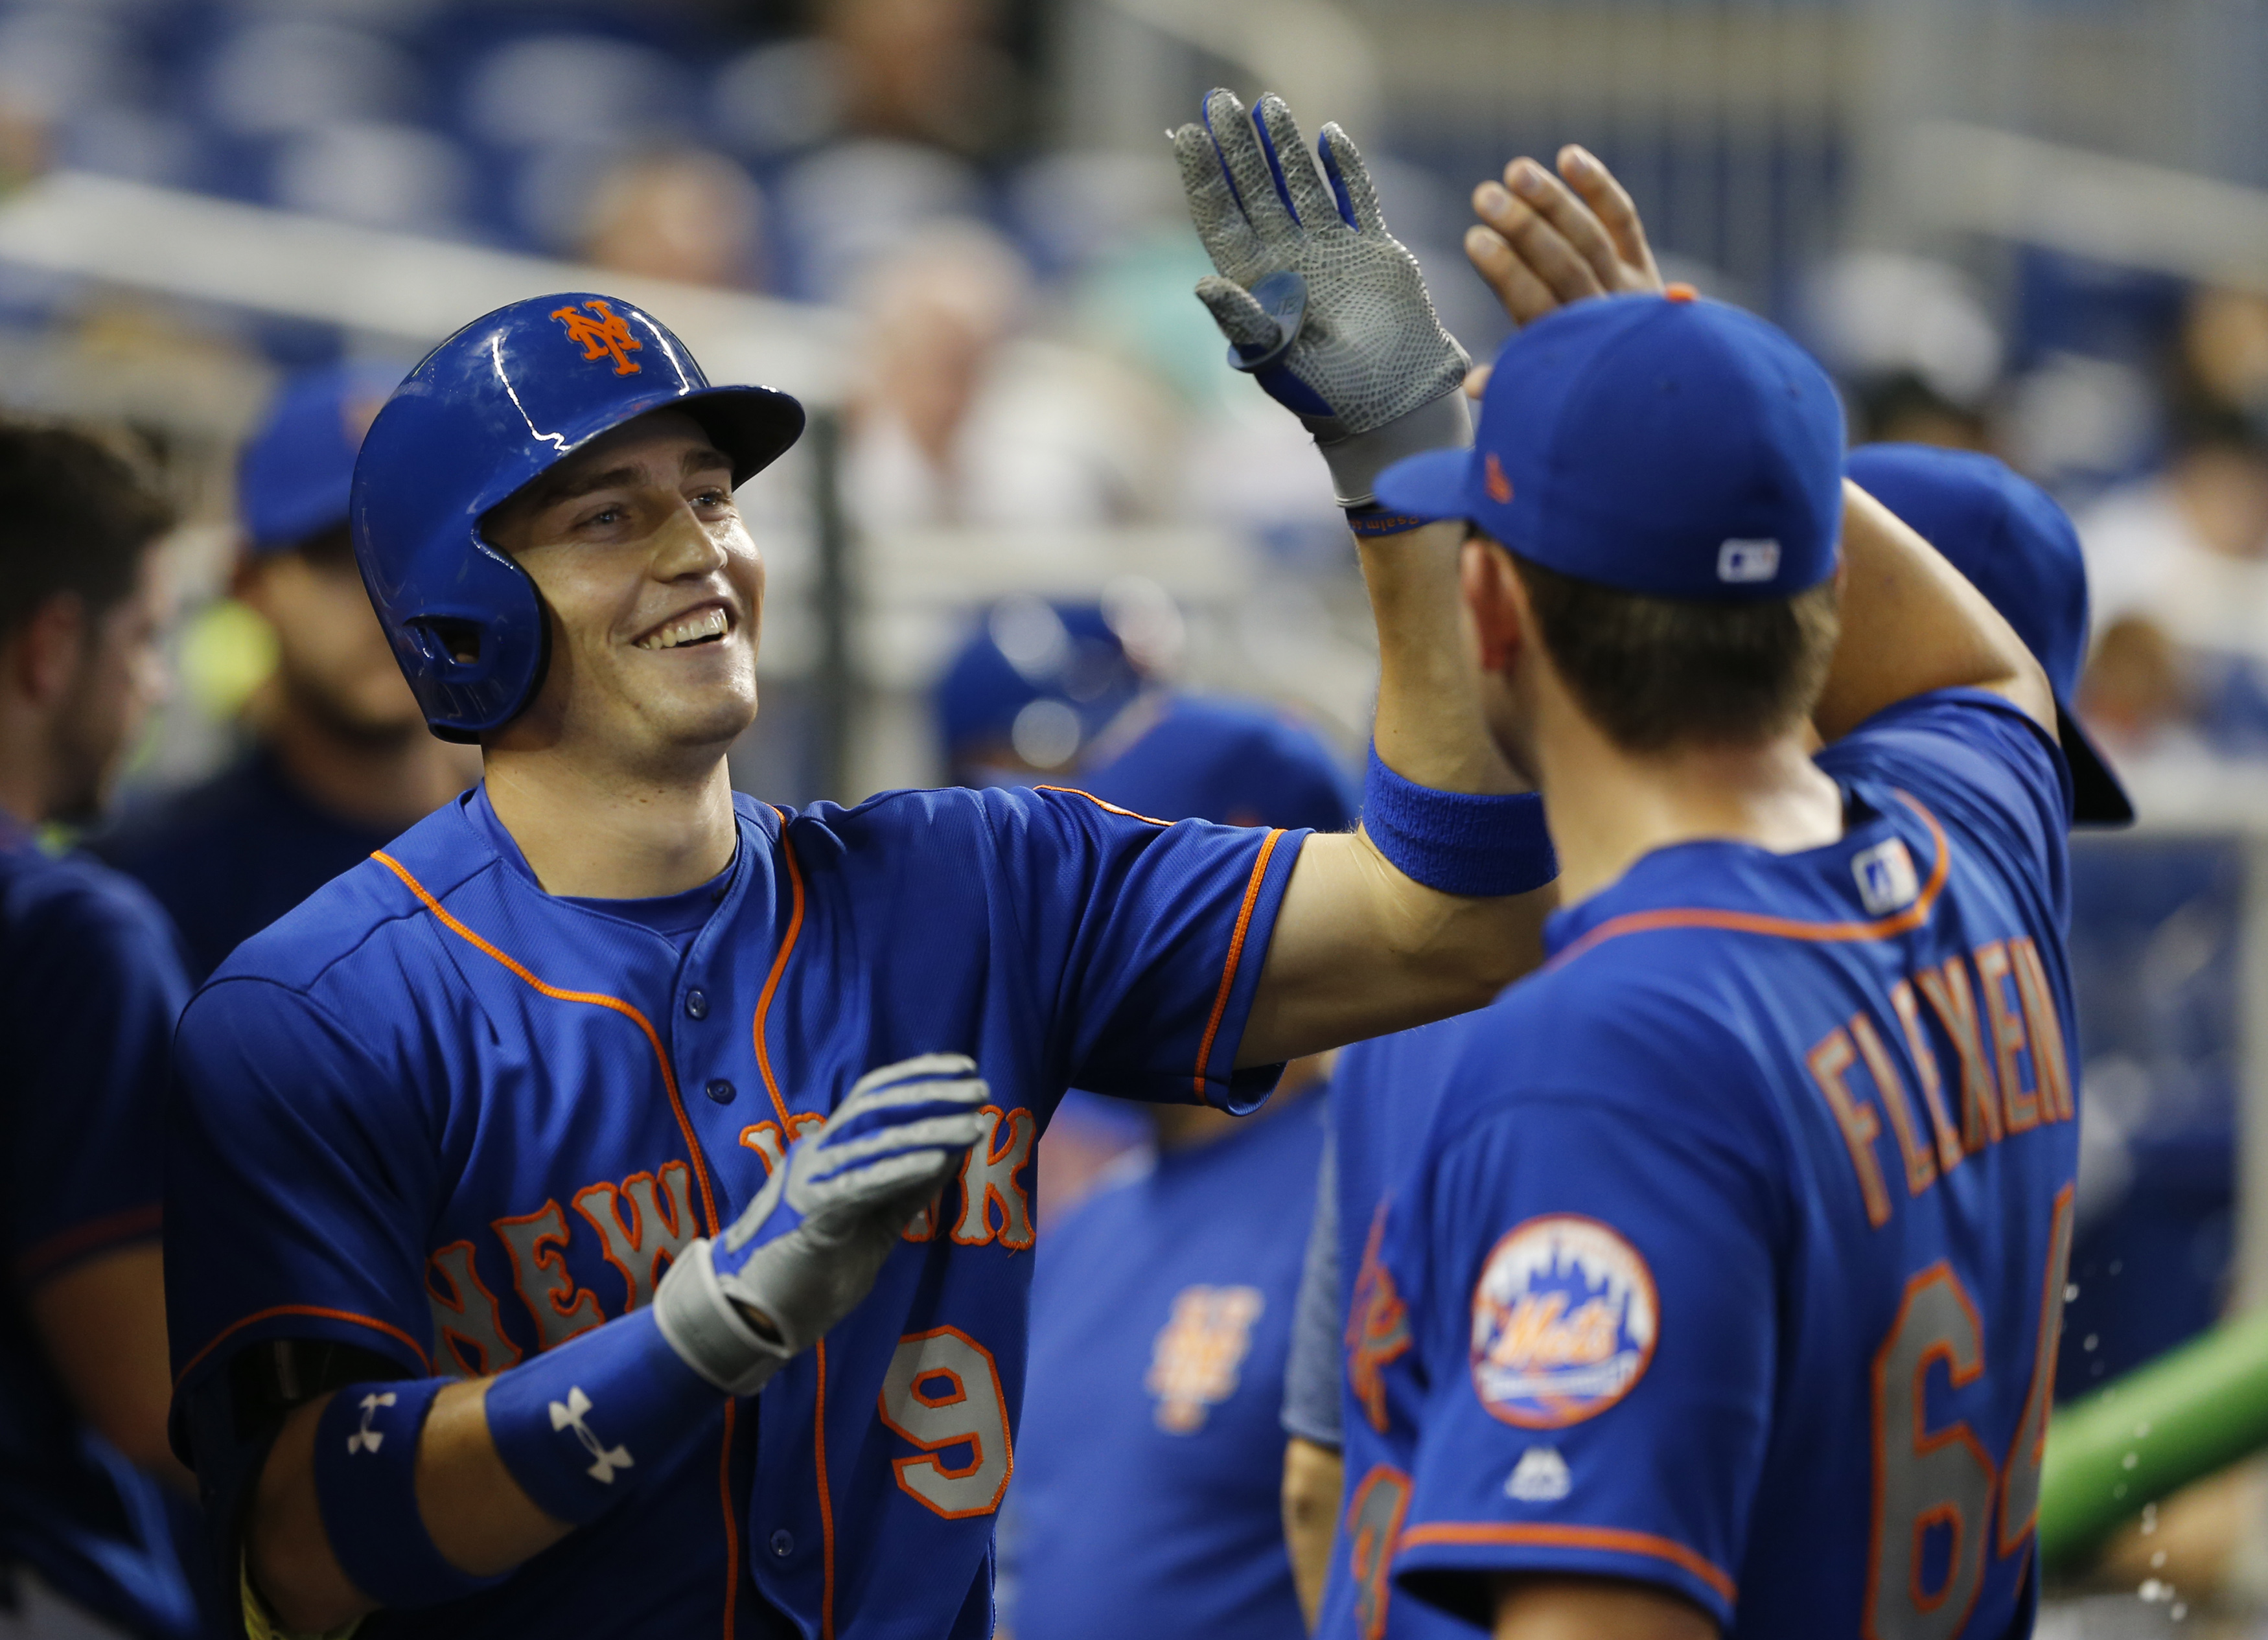 D'Arnaud's 2 HRs power Mets by Nationals